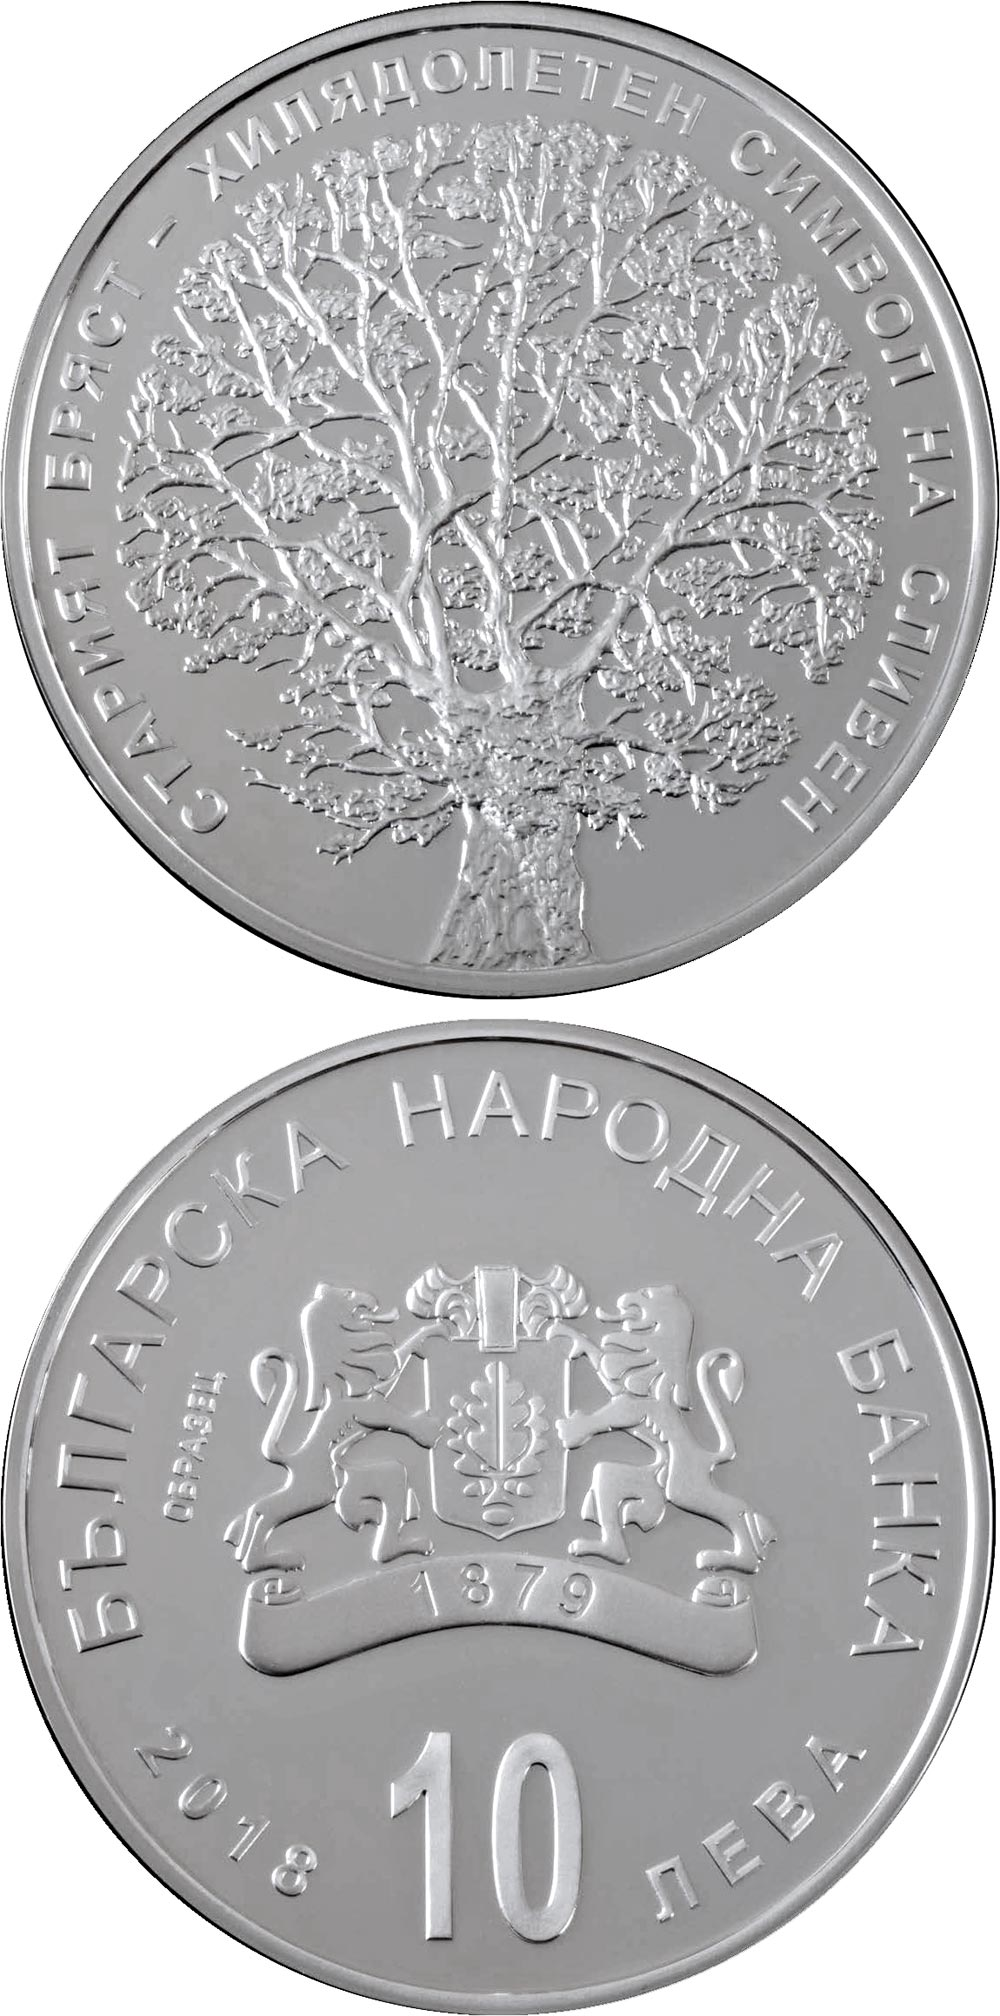 Image of The Old Elm Tree in Sliven – 10 lev  coin Bulgaria 2018.  The Silver coin is of Proof quality.